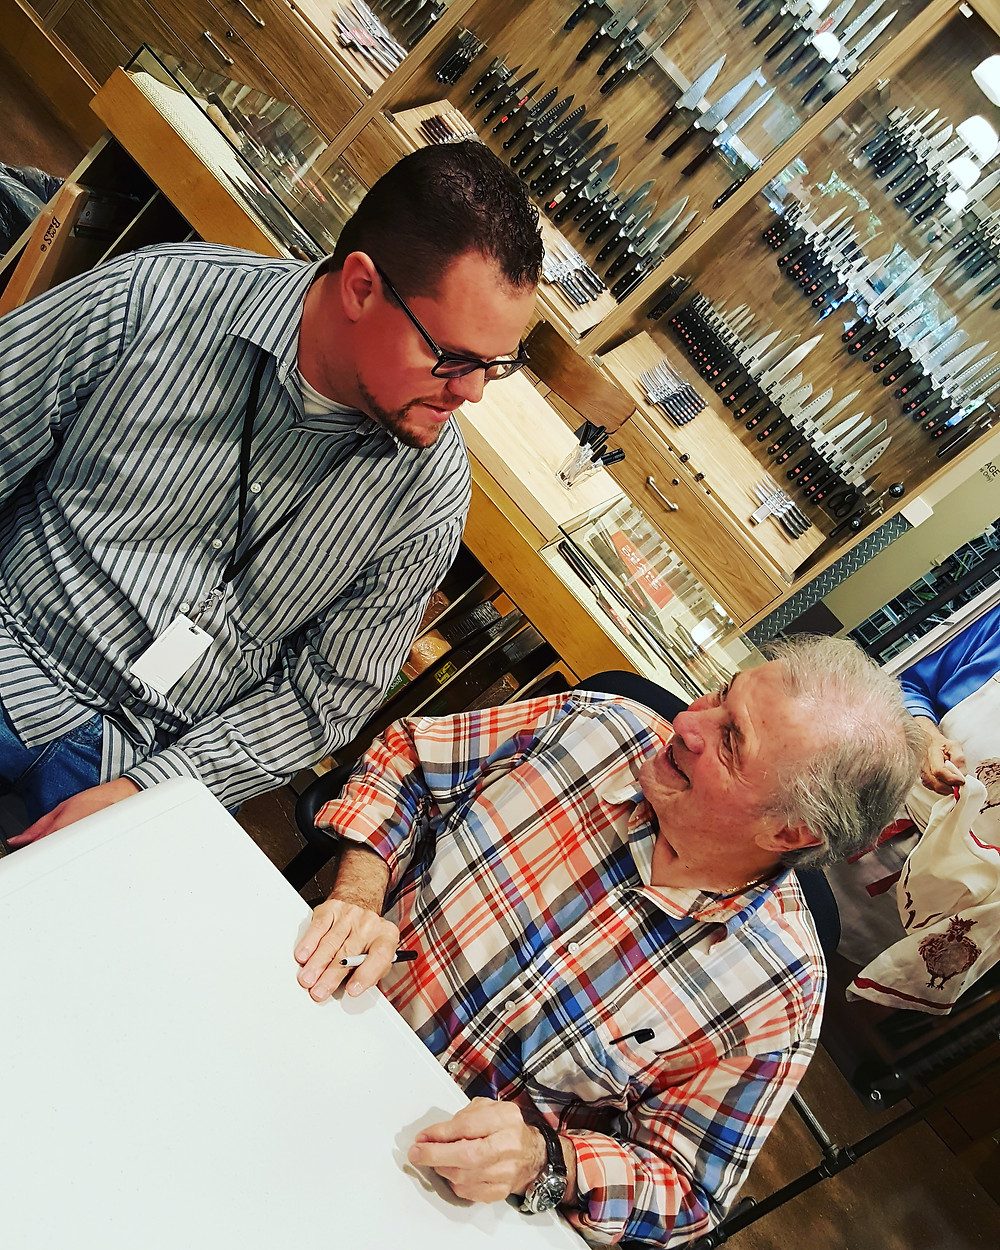 Sharing a moment with Jacques Pepin